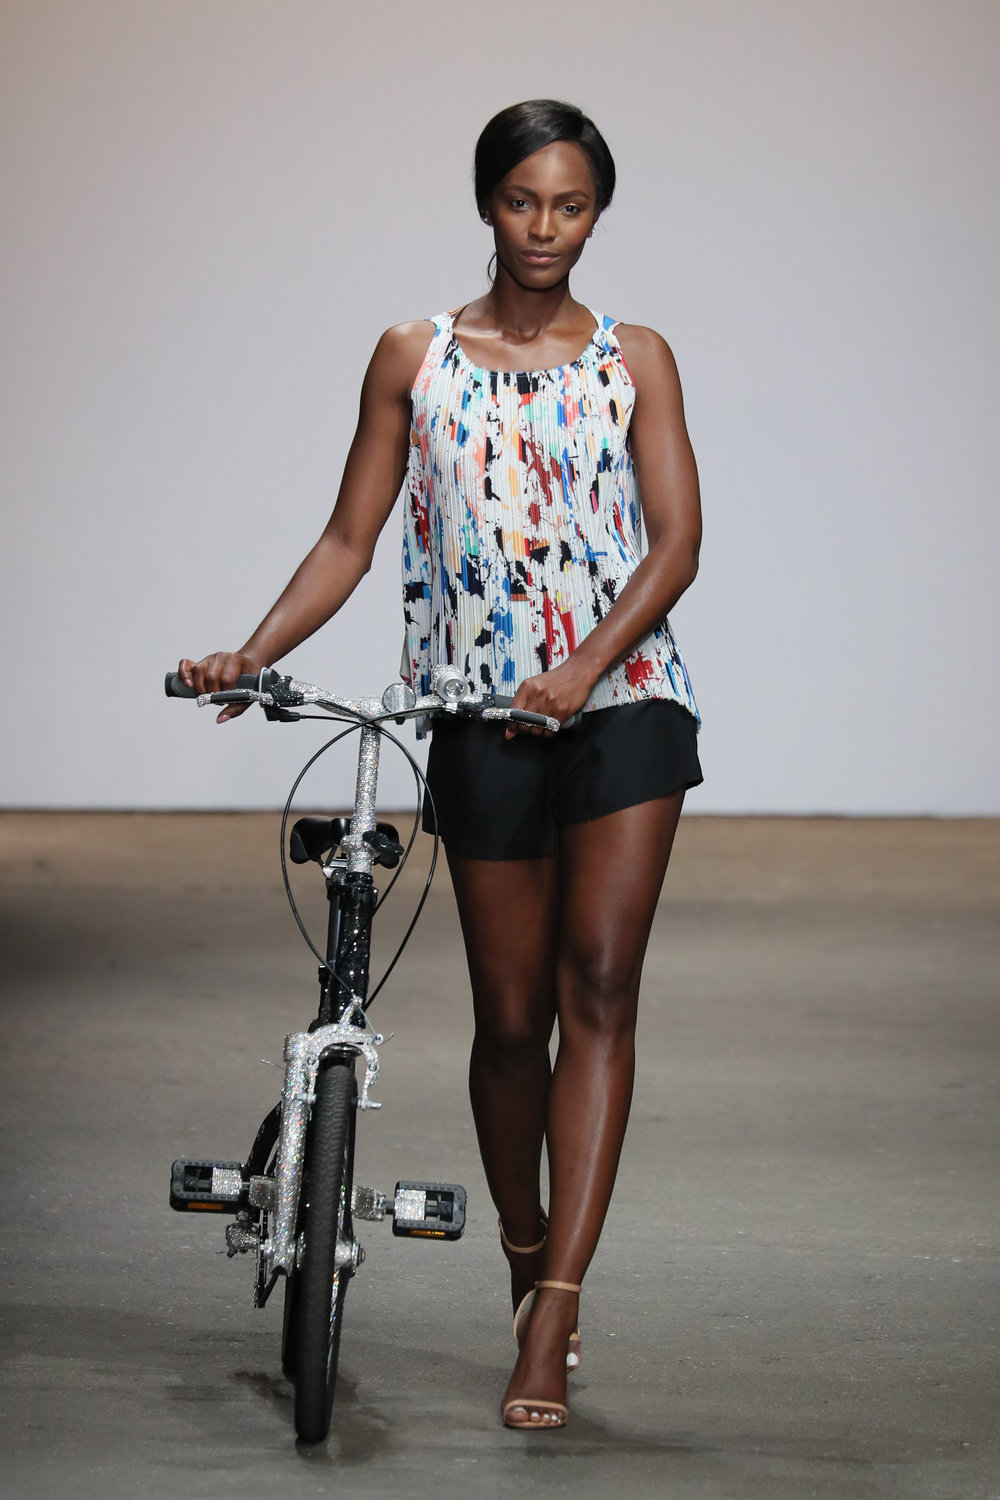 America's Next Top Model, Mame Adjei, opens the show with Jimmy Crystal's $40k bike, adorned with over 50,000 Swarovski crystals and took over a month to produce.